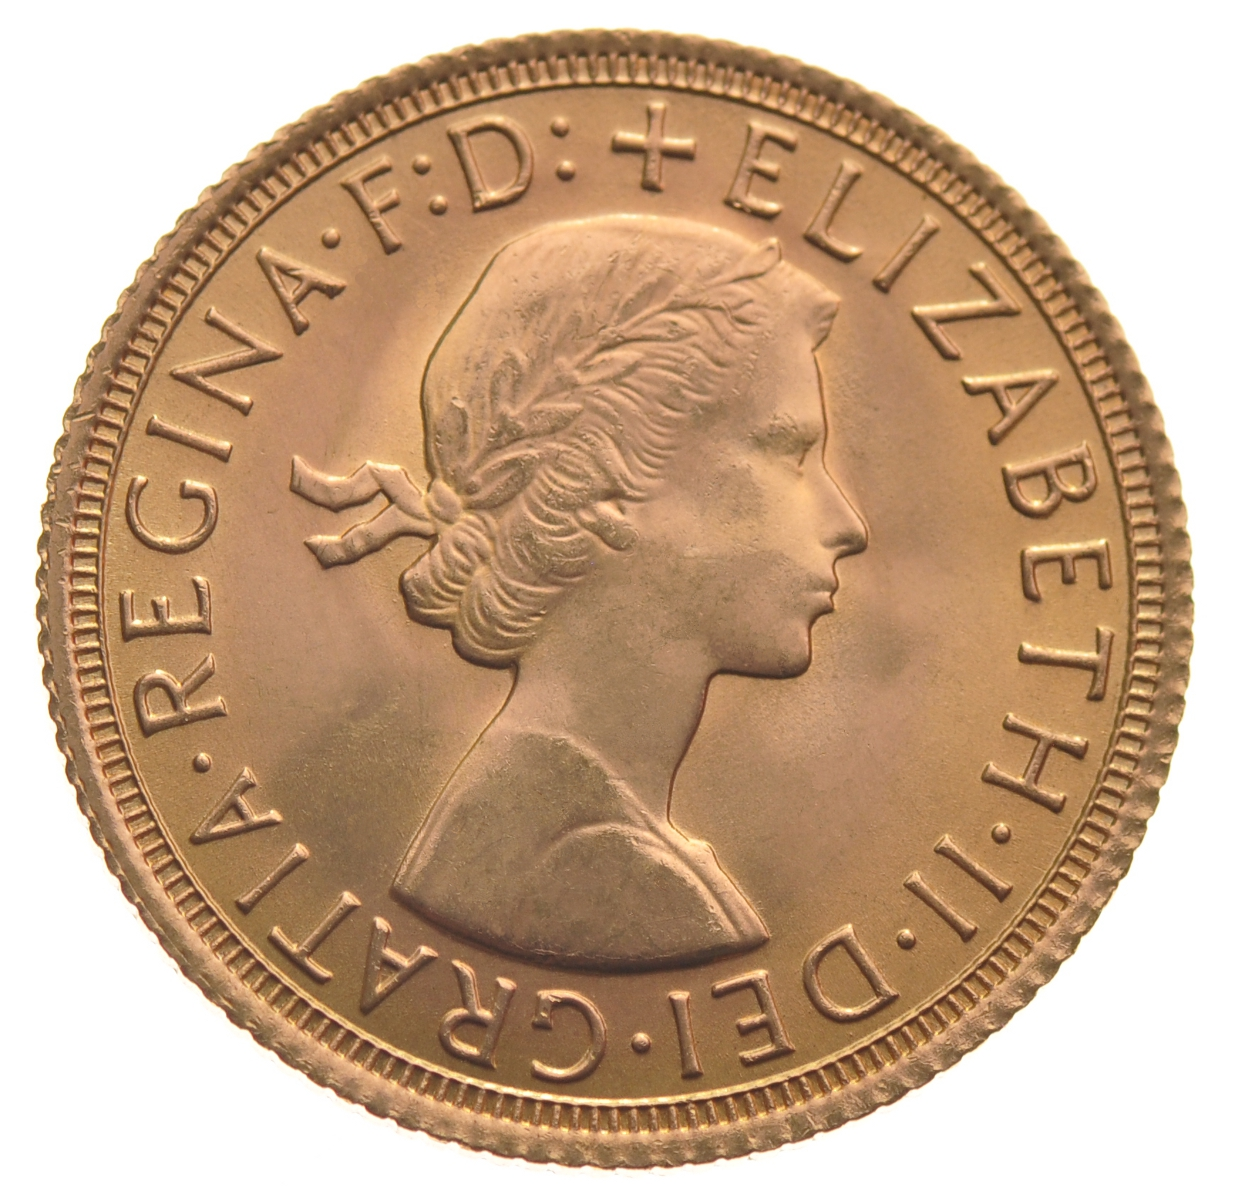 1963 Gold Sovereign Elizabeth Ii Young Head 163 276